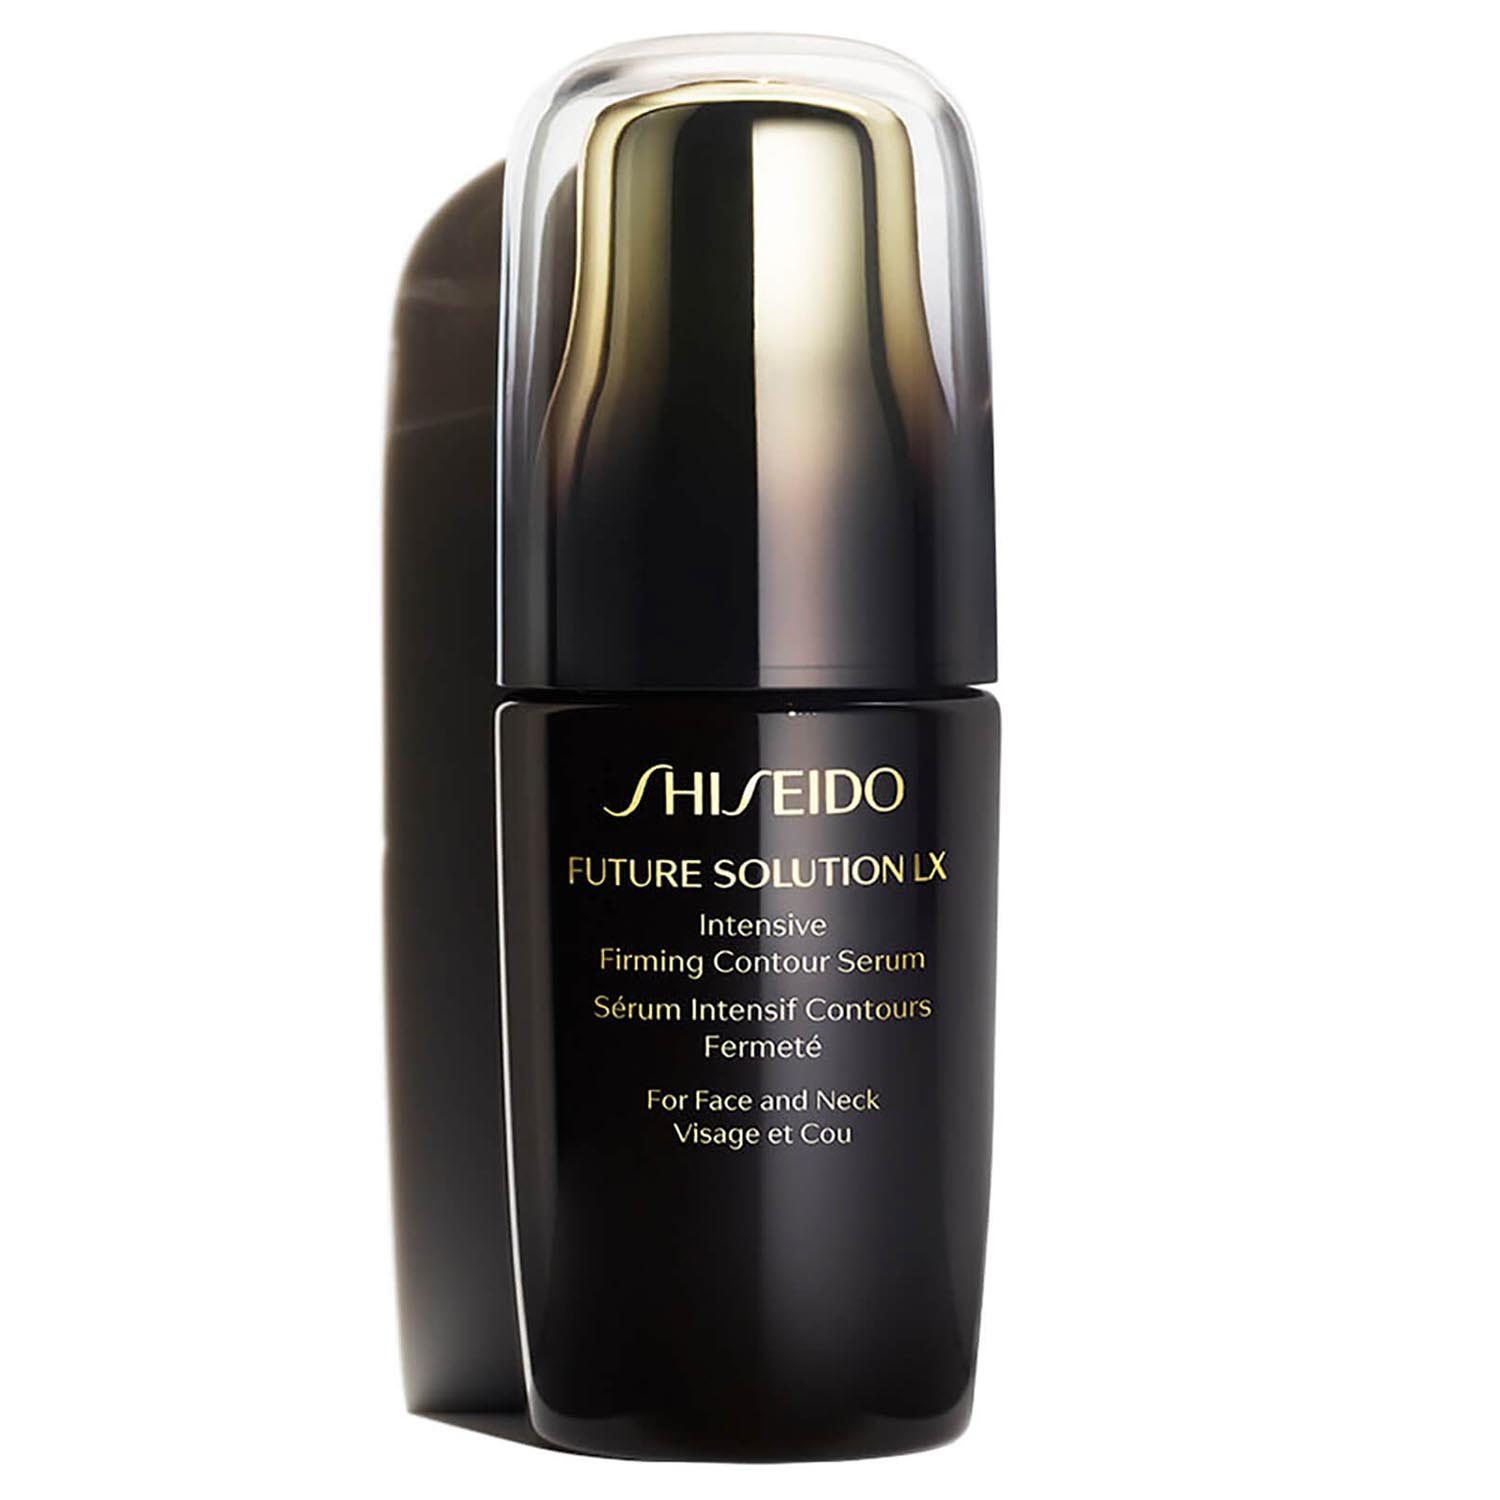 Shiseido future solution lx firming contour serum 50ml